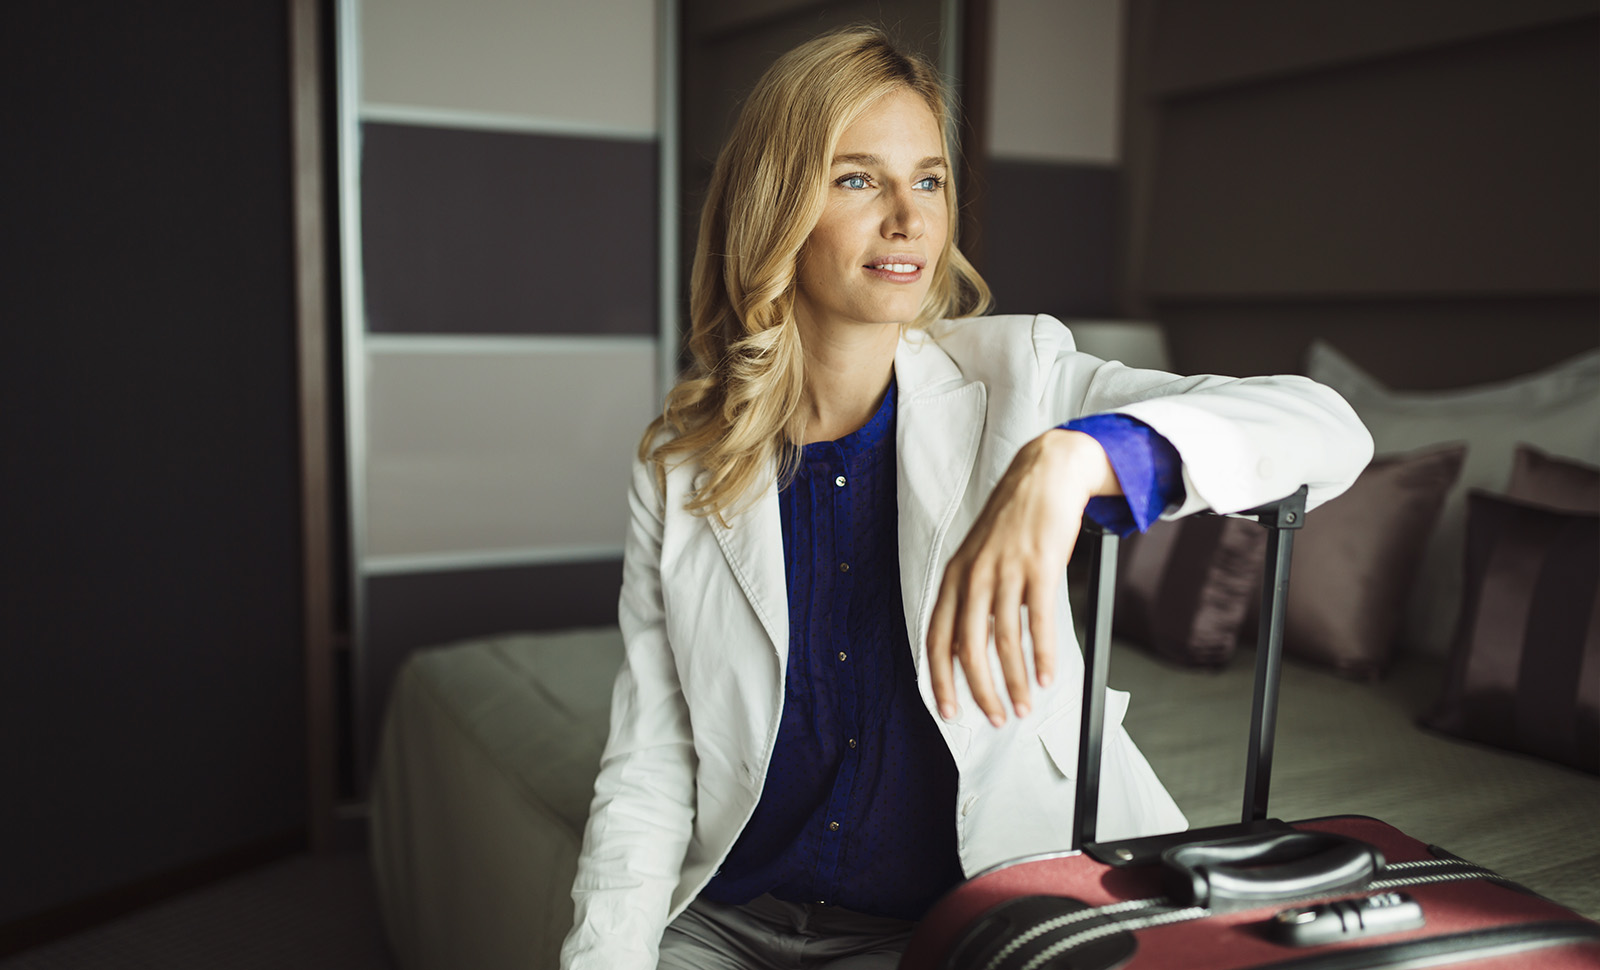 woman sitting on a hotel bed with her arm resting on her suitcase